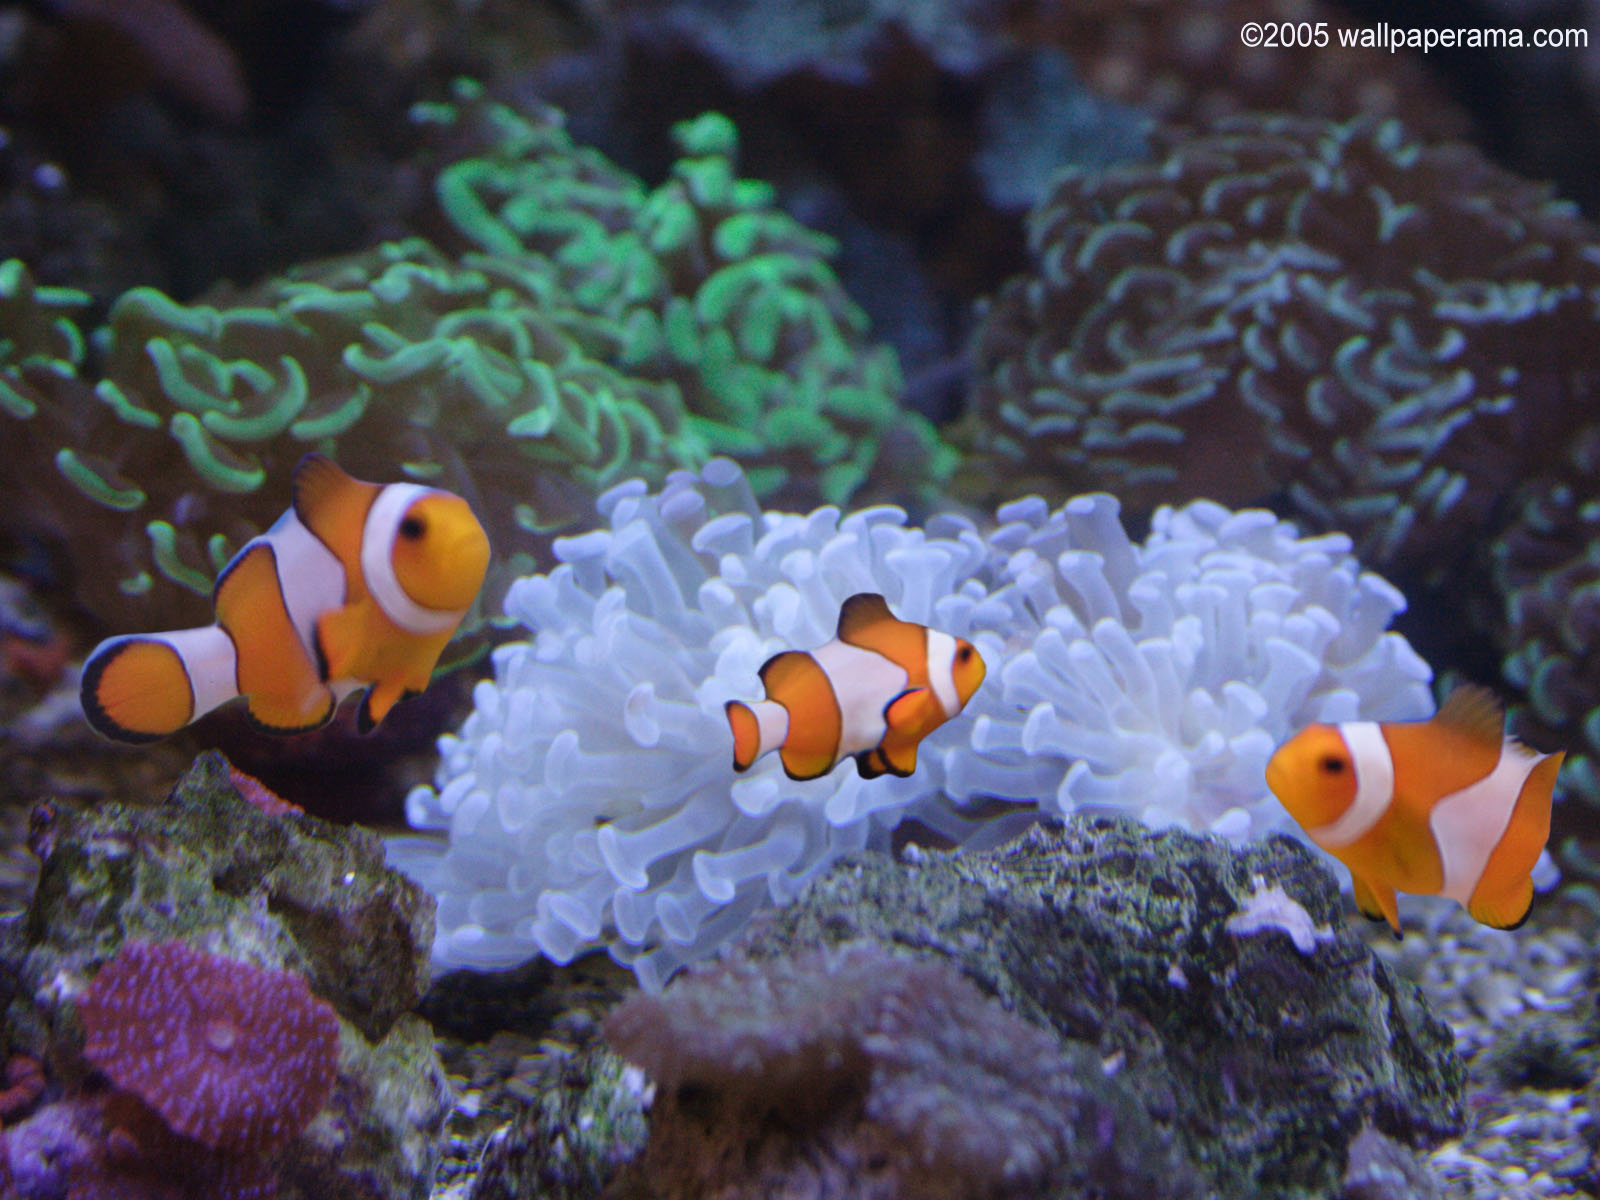 Clown Fish Aquarium Wallpaper Free Hd Backgrounds Images